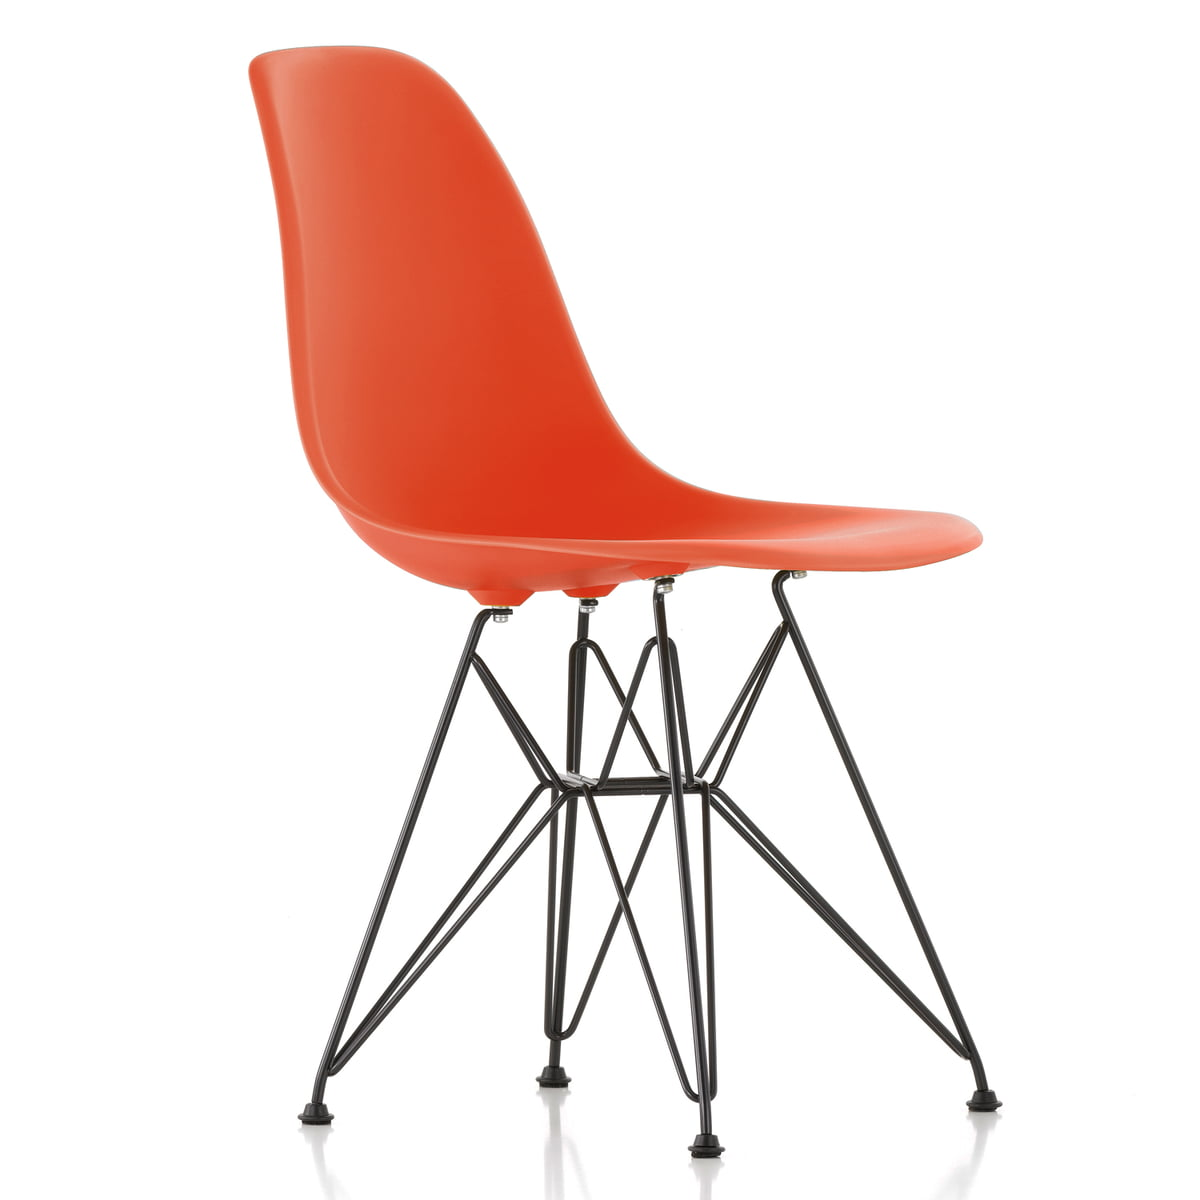 vitra eames plastic side chair dsr h 43 cm pulverbeschichtet poppy red kunststoffgleiter. Black Bedroom Furniture Sets. Home Design Ideas